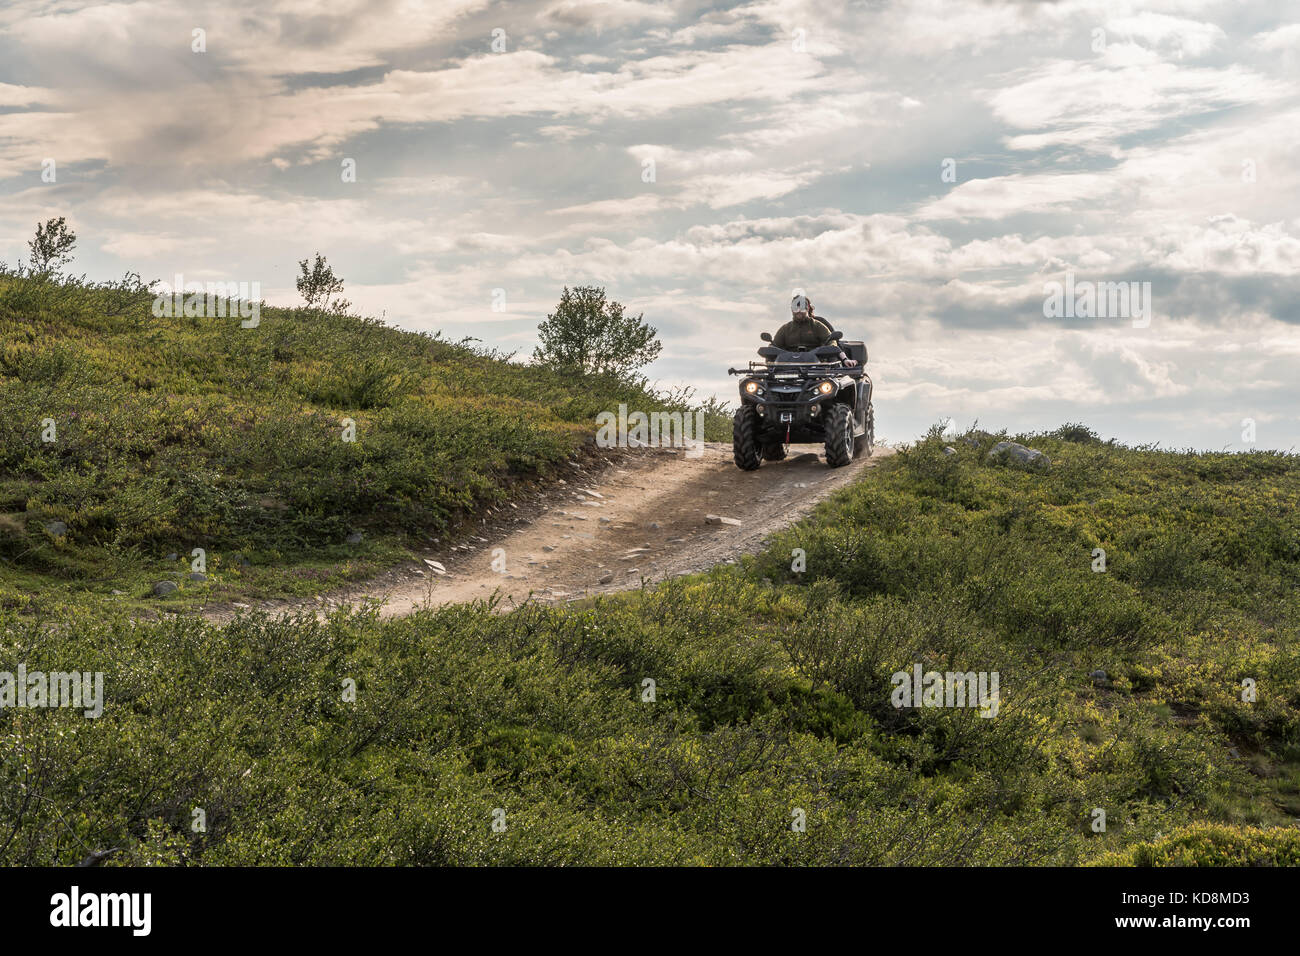 ATV driving at a mountain trail in Finnmark Norway - Stock Image